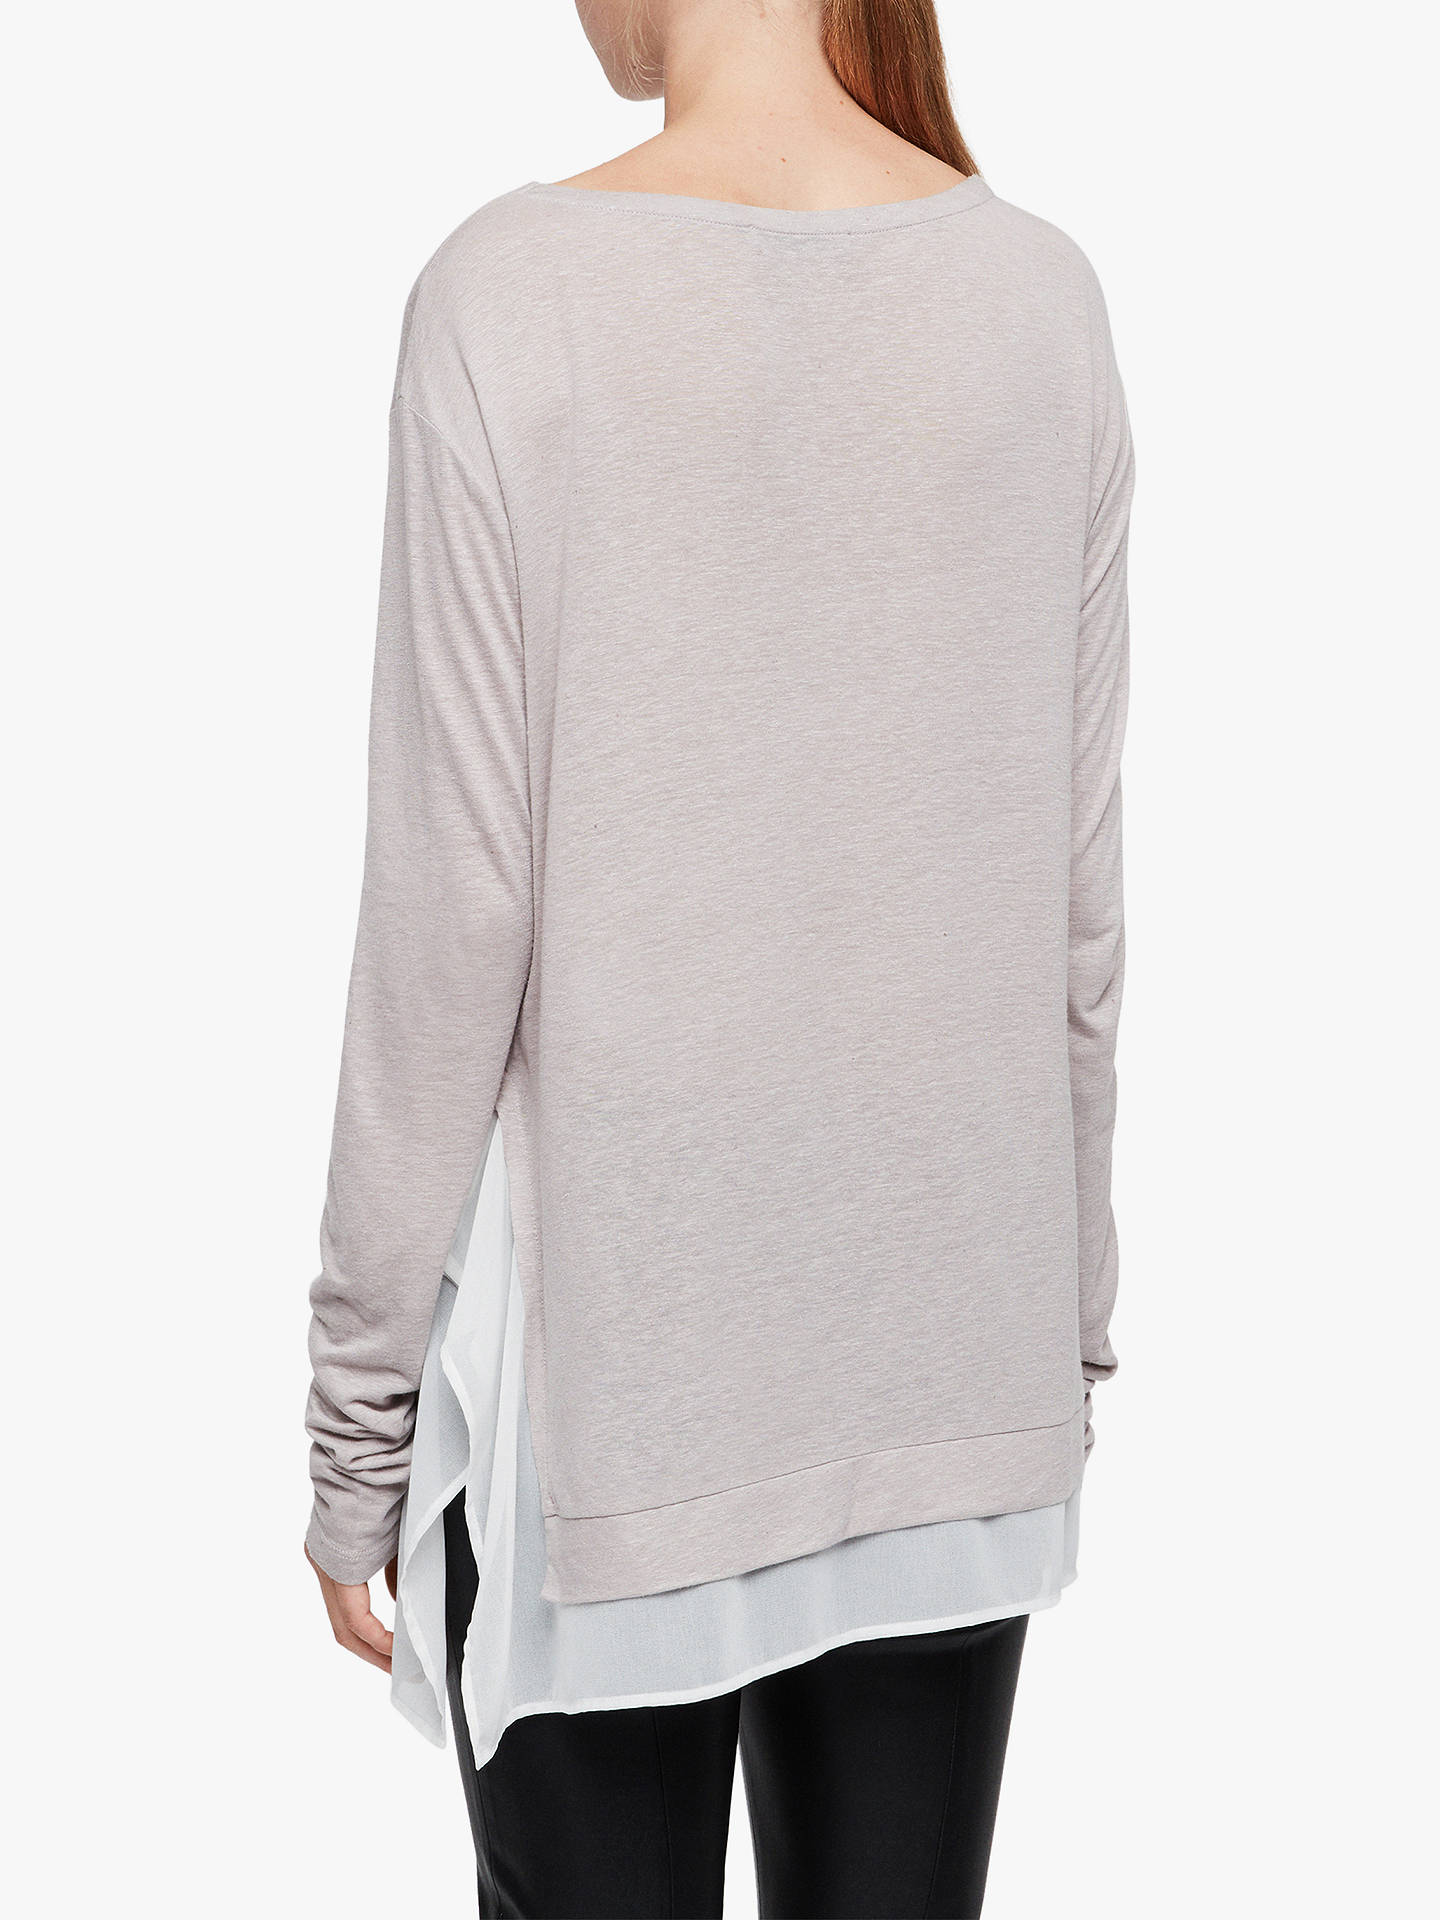 BuyAllSaints Miro Long Sleeve T-Shirt, Ash Grey, L Online at johnlewis.com